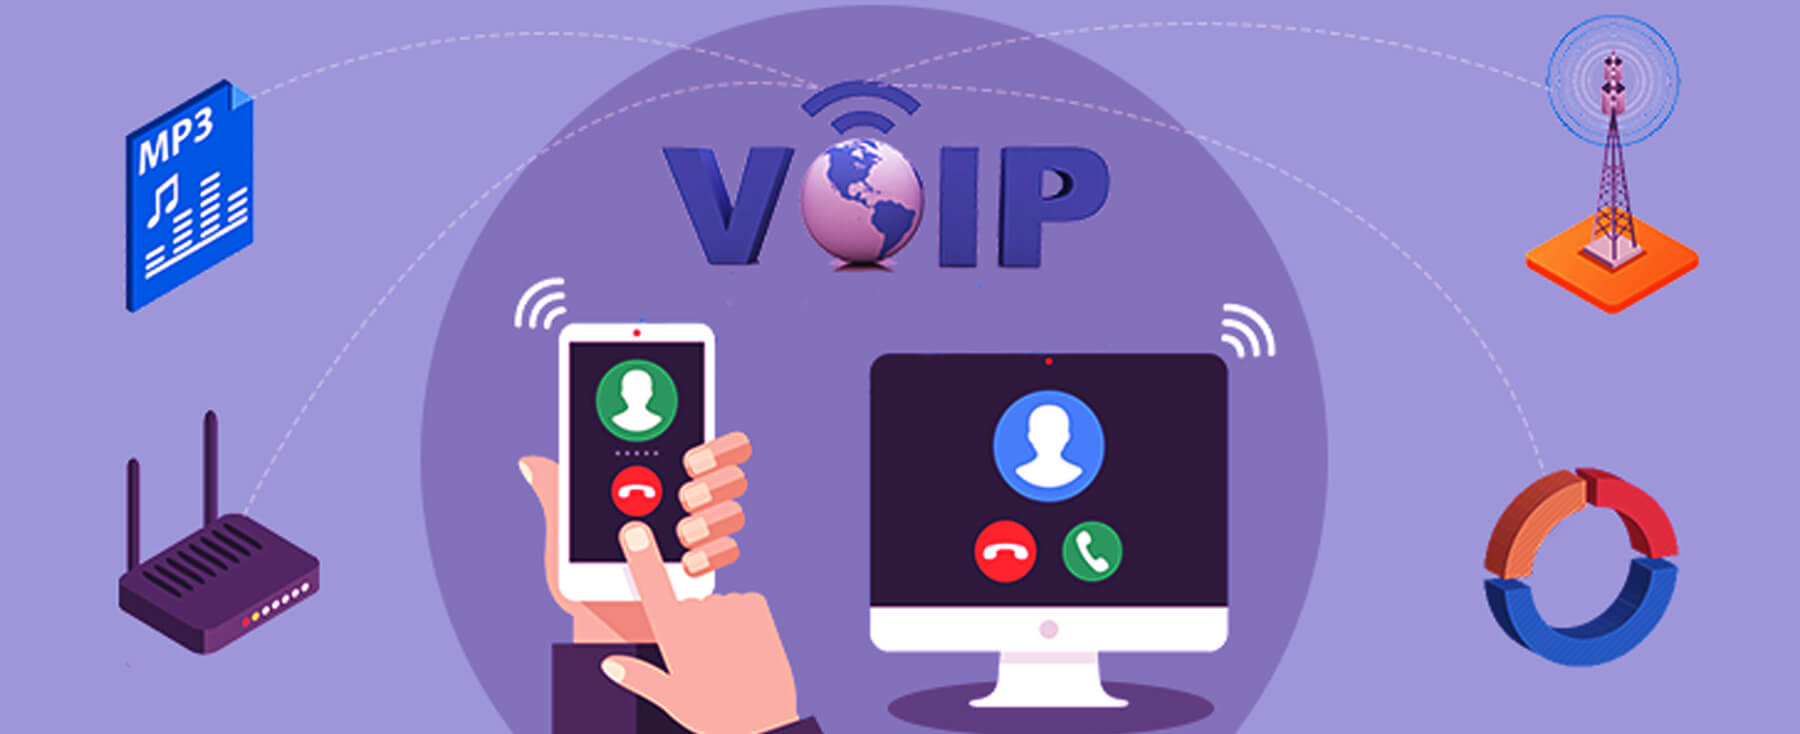 VoIP Service Provider Ultimate guide| Hire Softphone App